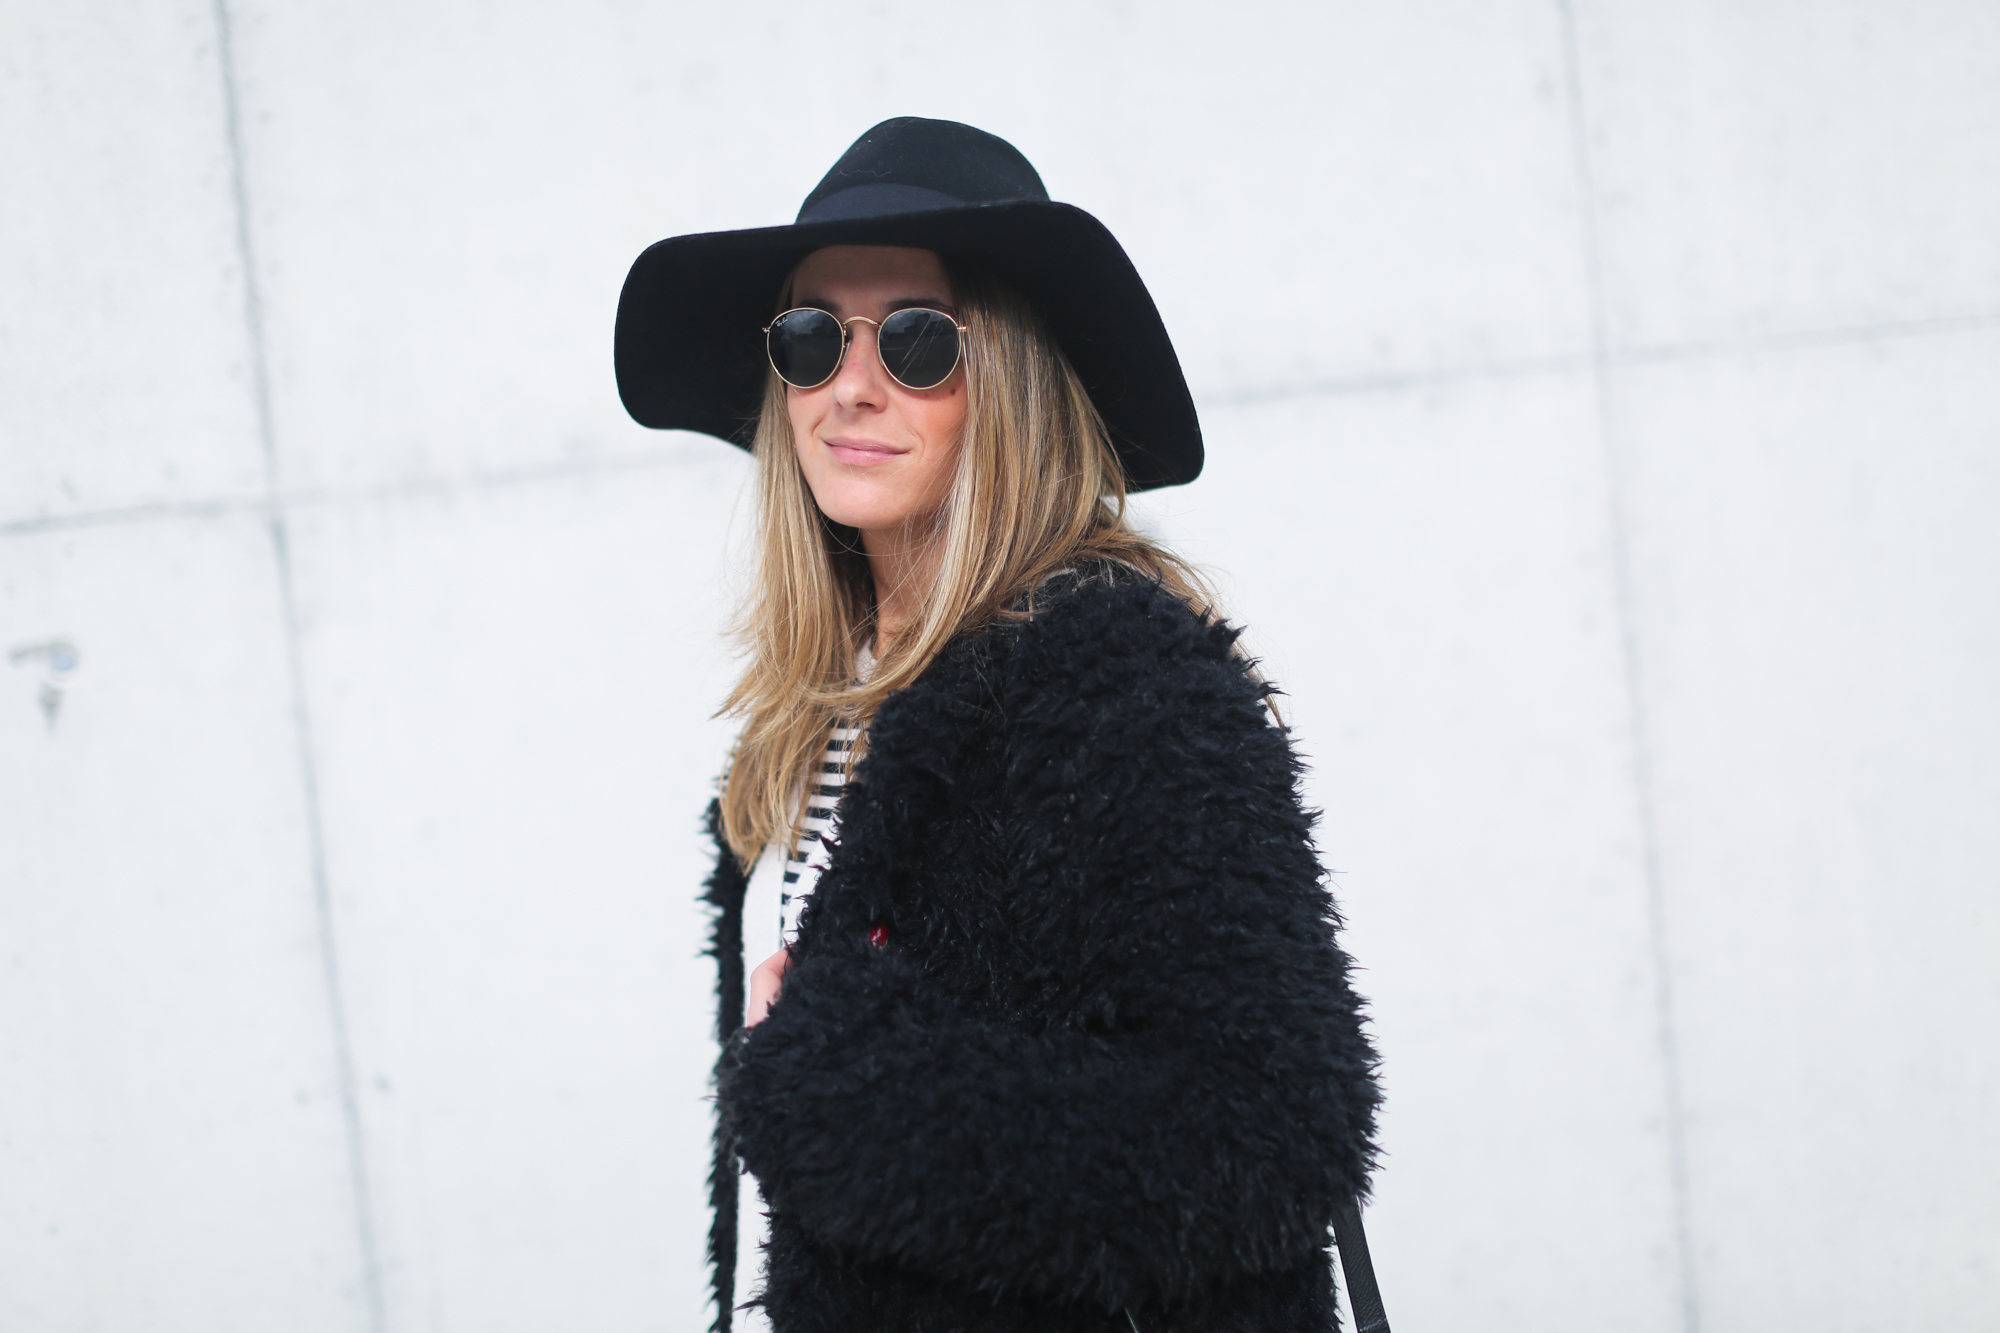 clochet_streetstyle_Billabong_Christmas_collection_furry_coat-16